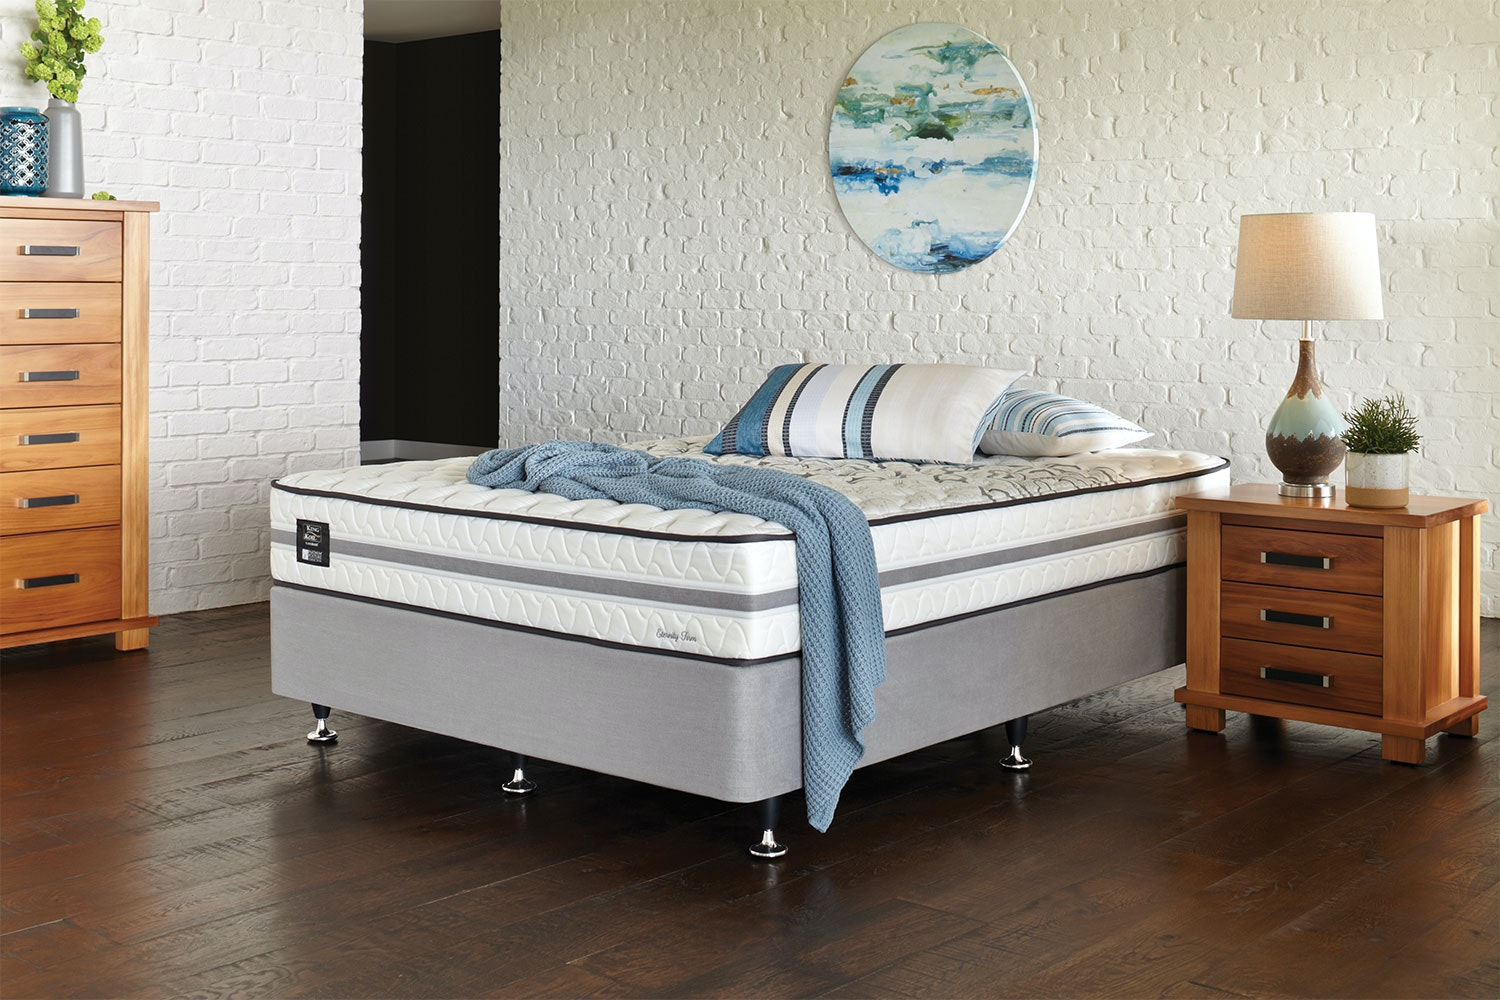 Eternity Firm Super King Bed by King Koil